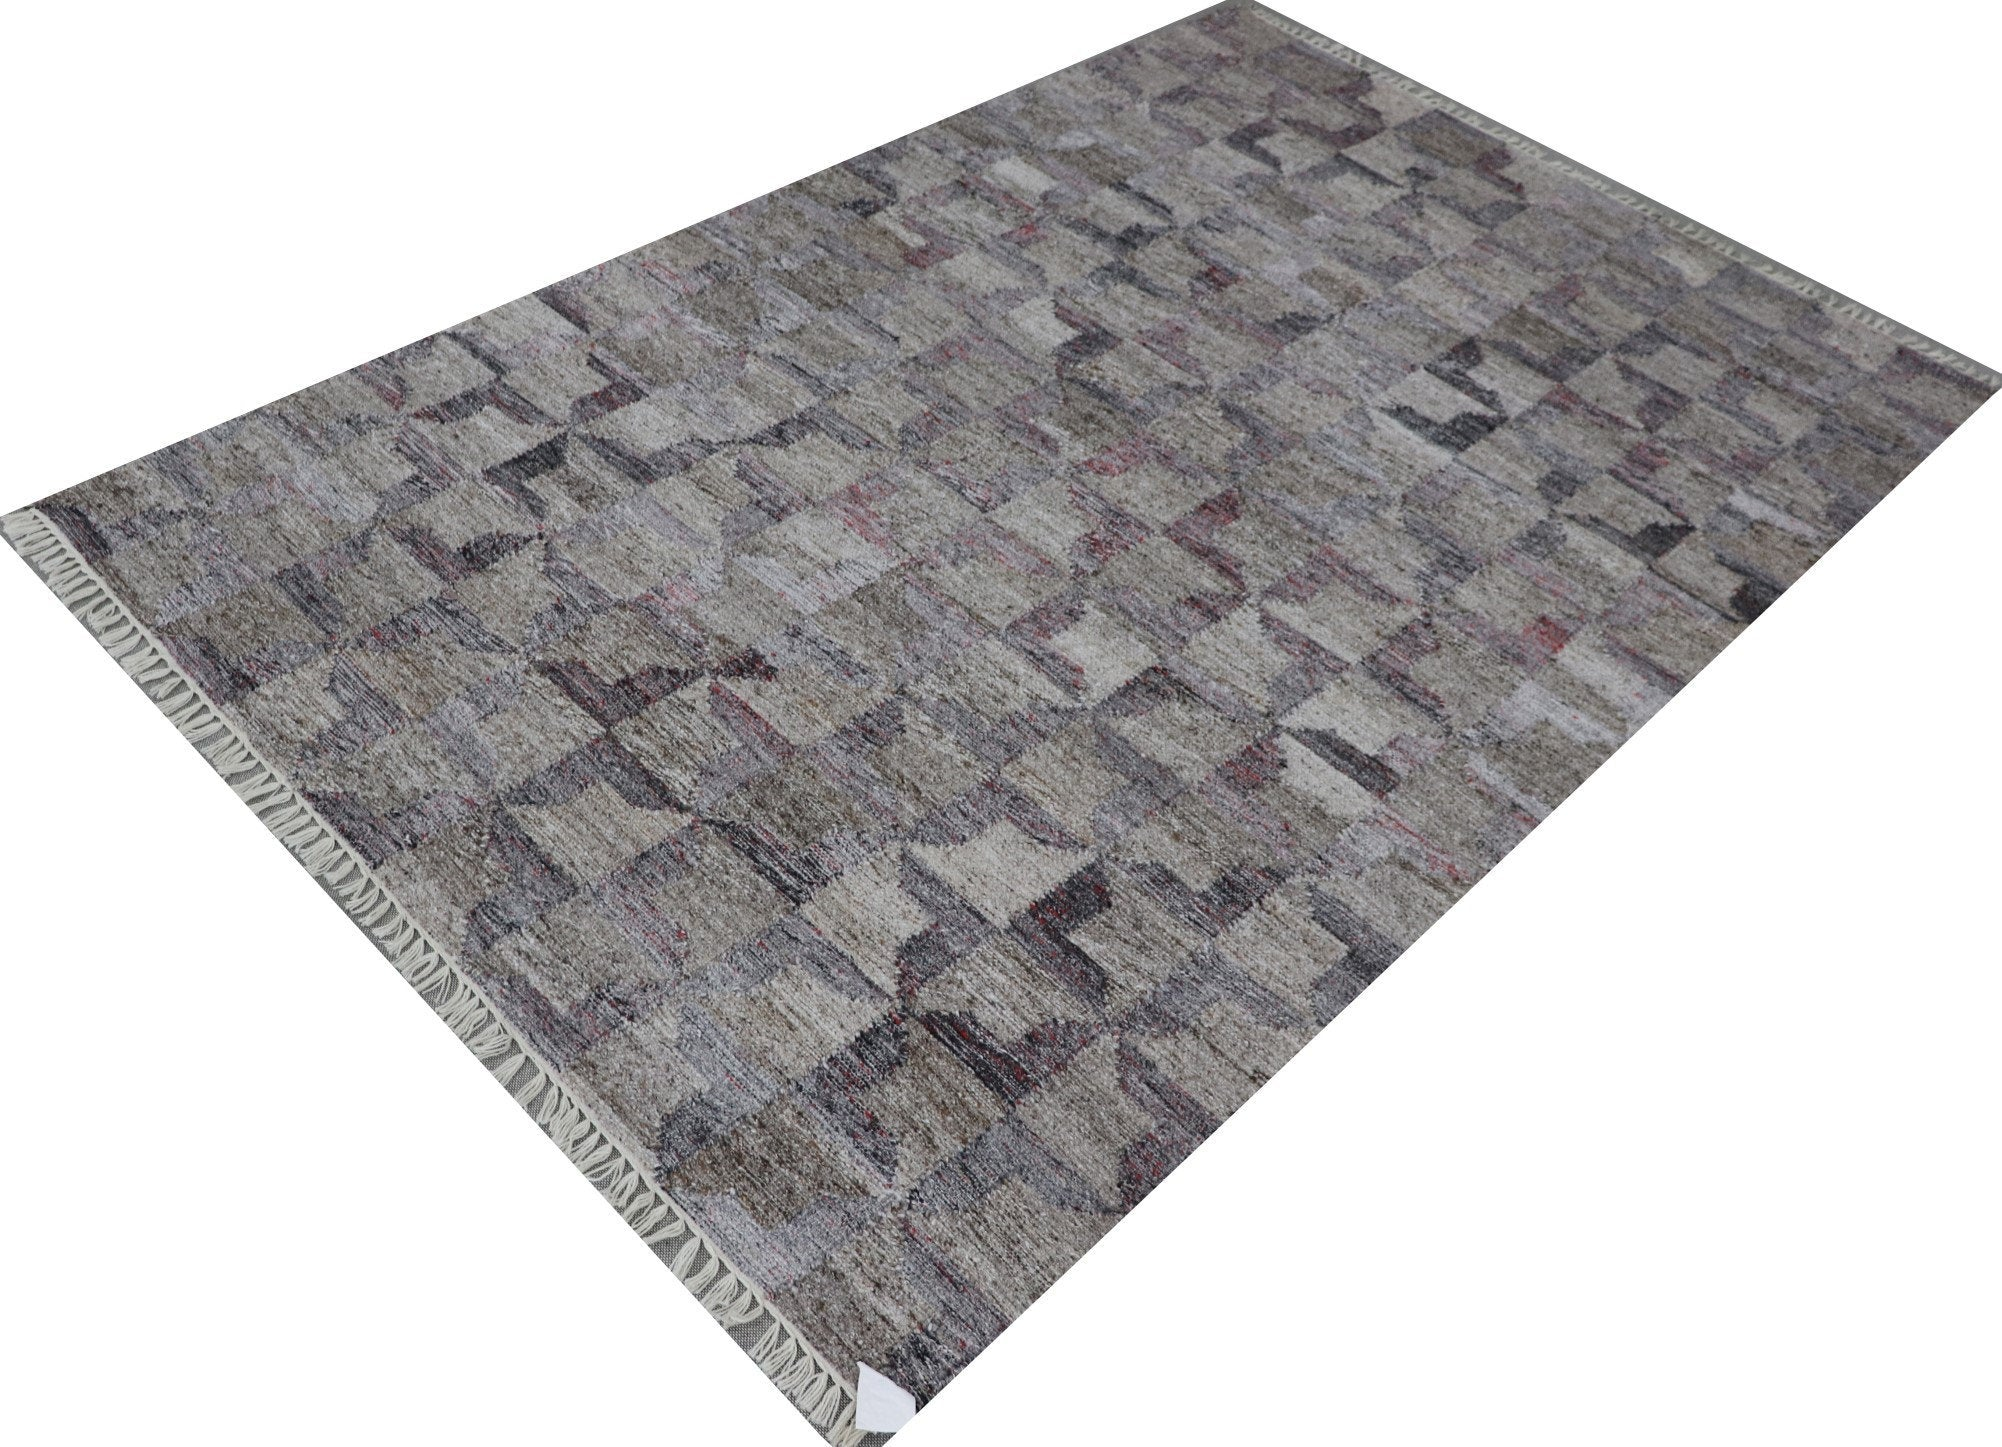 "4'11"" x 7'11"" Handmade Gray Geometric Turkish Kilim Rug , Oriental Turkish Carpet Made from Recycled PET Wool , Kitchen Office Rug   16925"